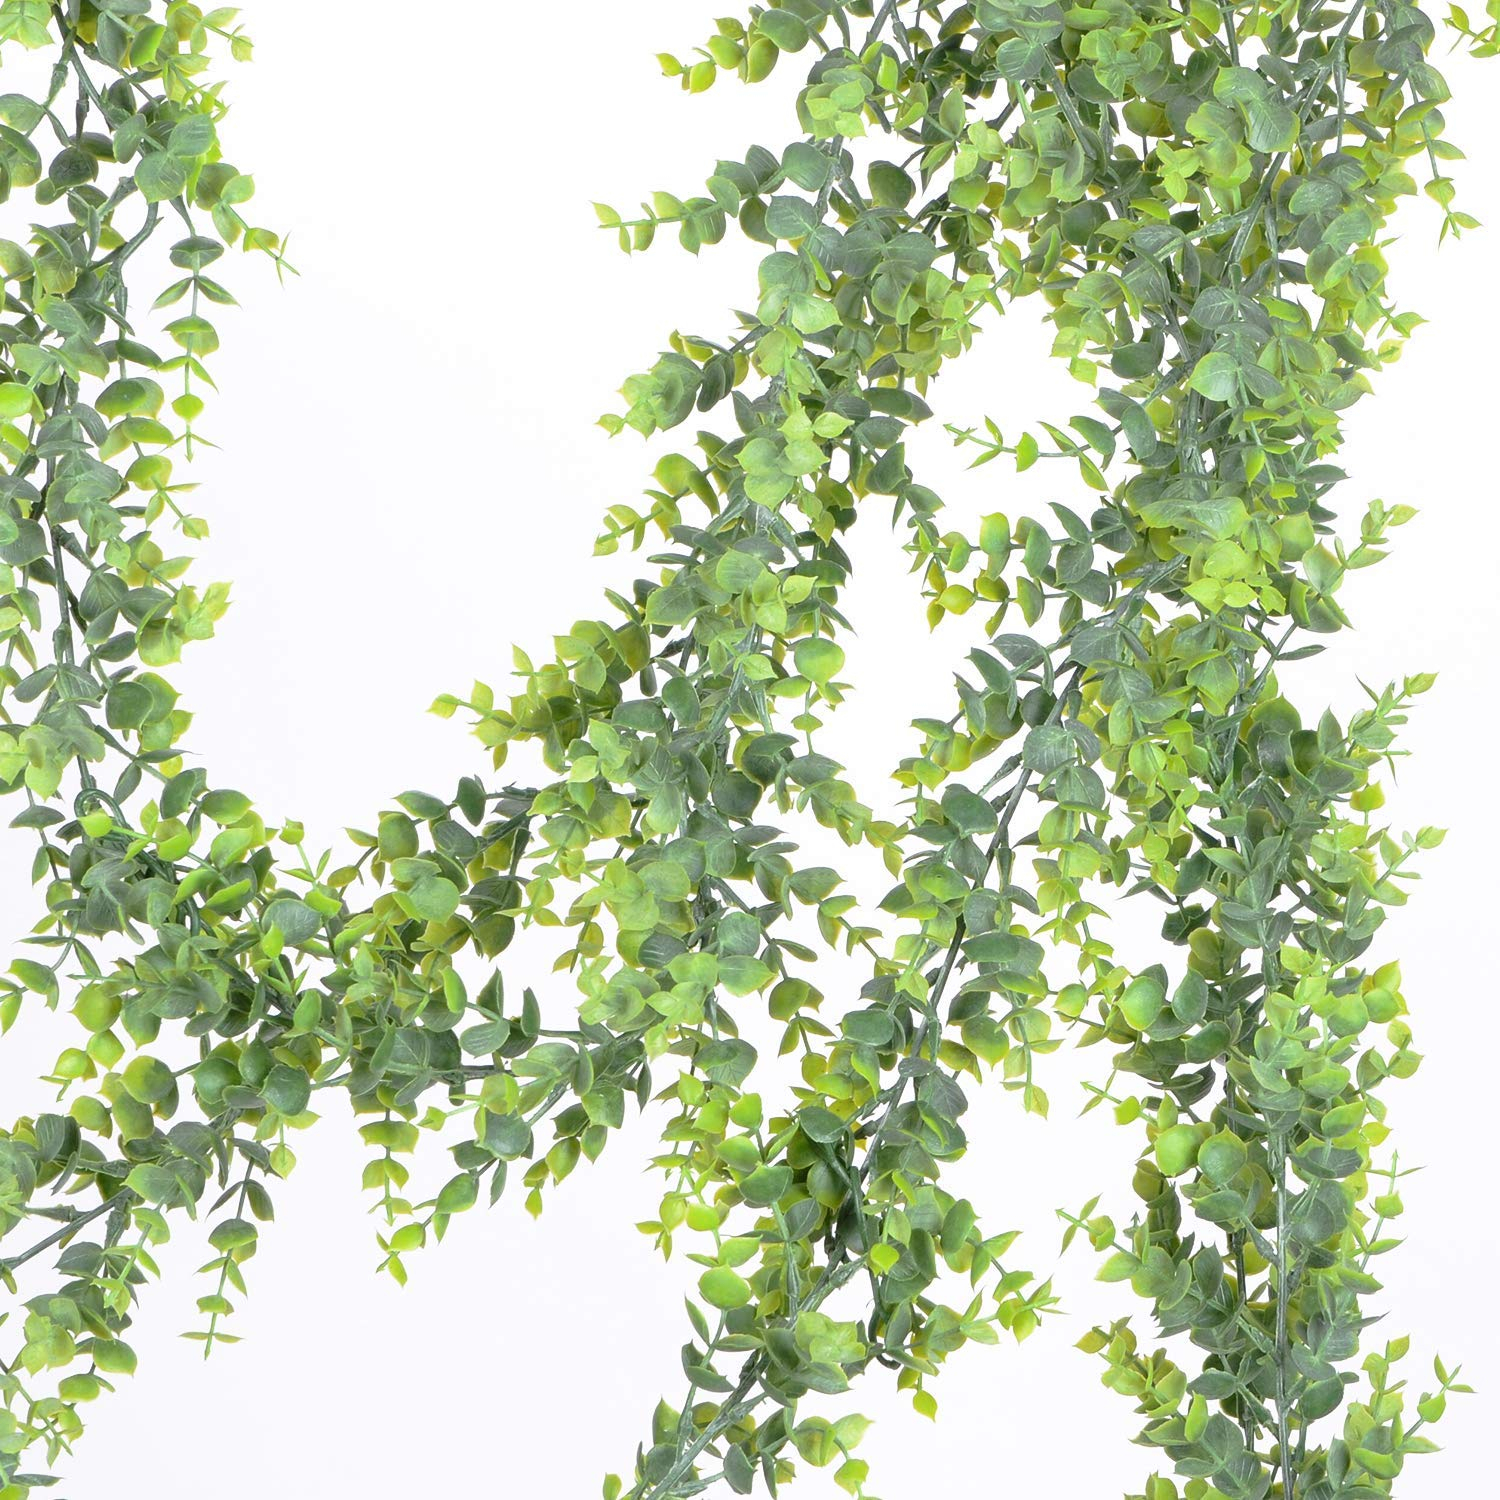 2 Pack Faux Eucalyptus Garland, Artificial Vines Fake Eucalyptus Greenery  Garland Wedding Backdrop Arch Wall Decor, 6 Feet/pcs Fake Hanging Plant For Intended For Three Flowers On Vine Wall Decor (Photo 30 of 30)